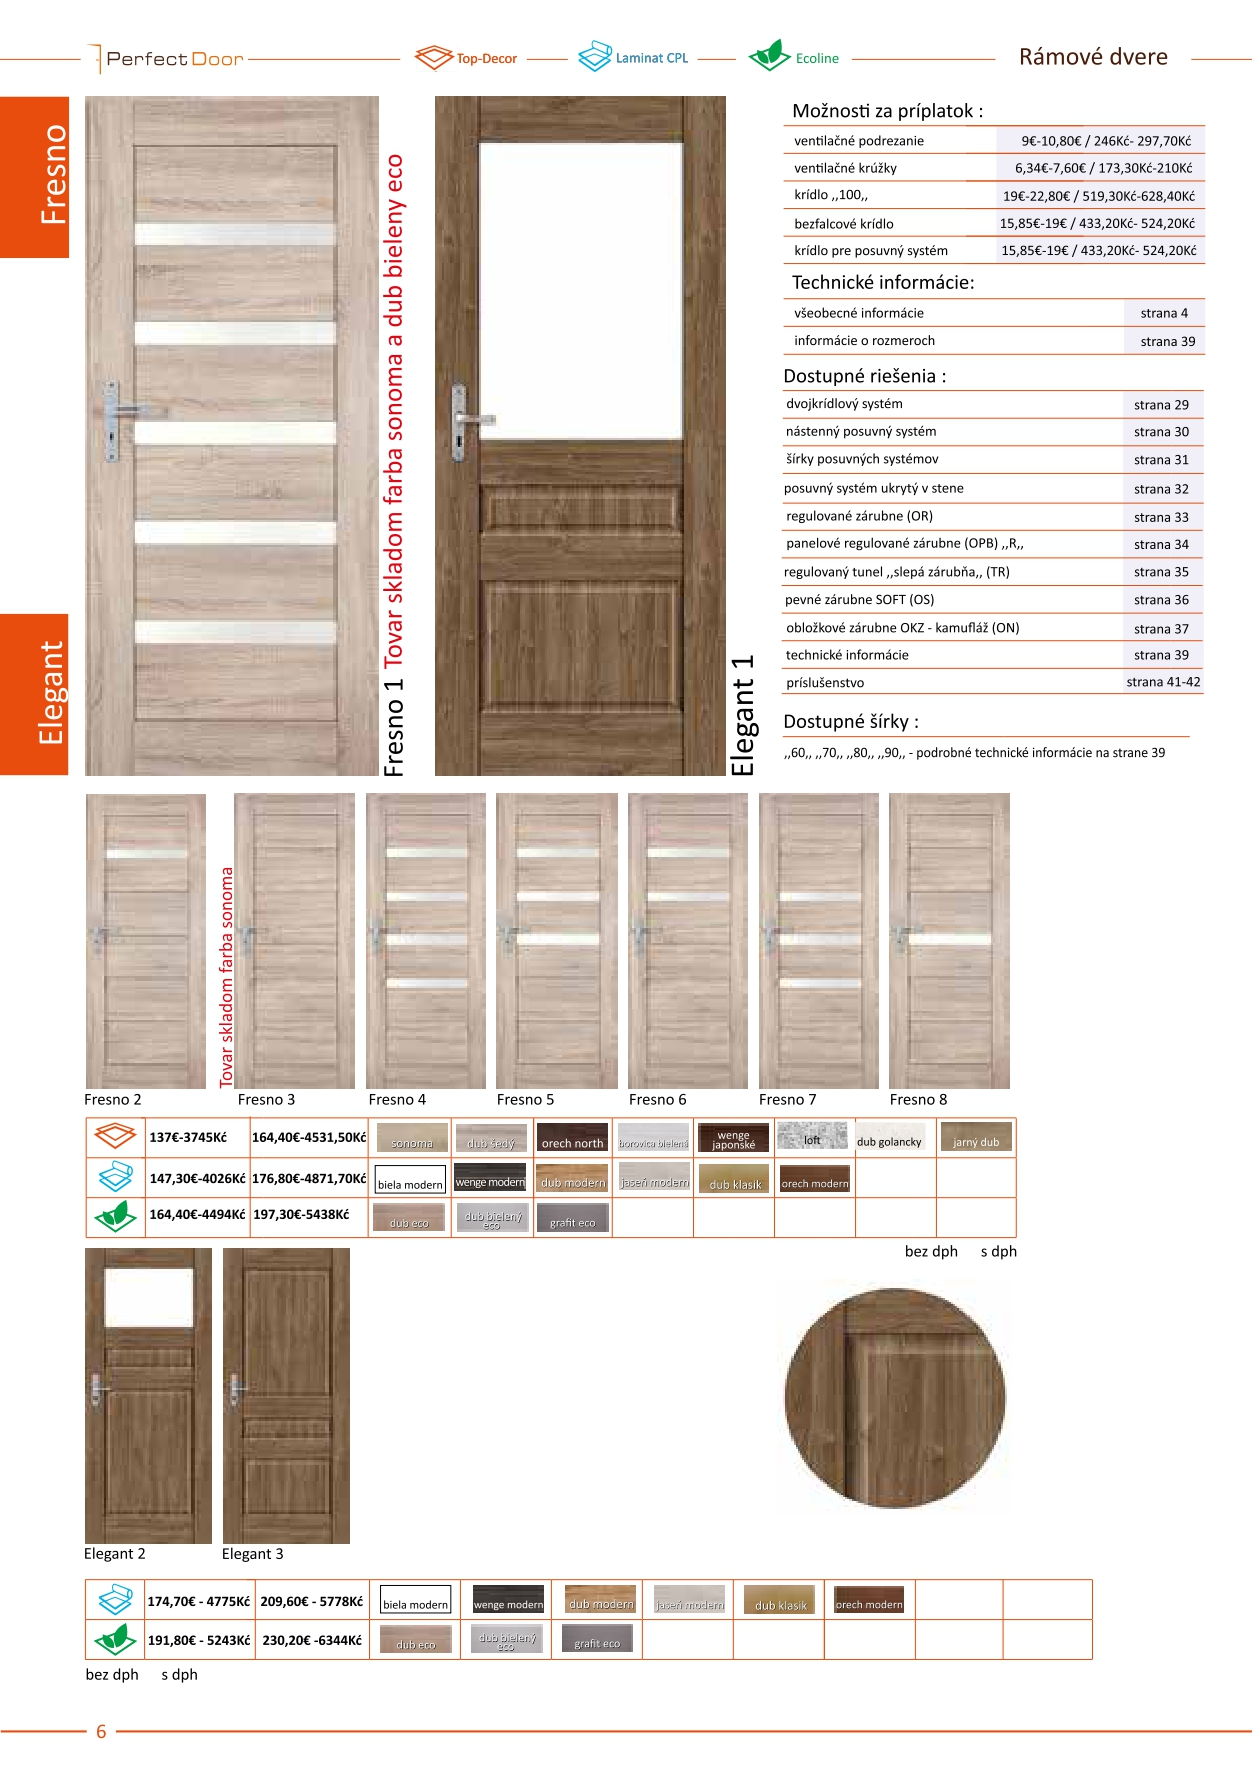 Perfectdoor katalog  1 2019 pages-to-jpg-0006